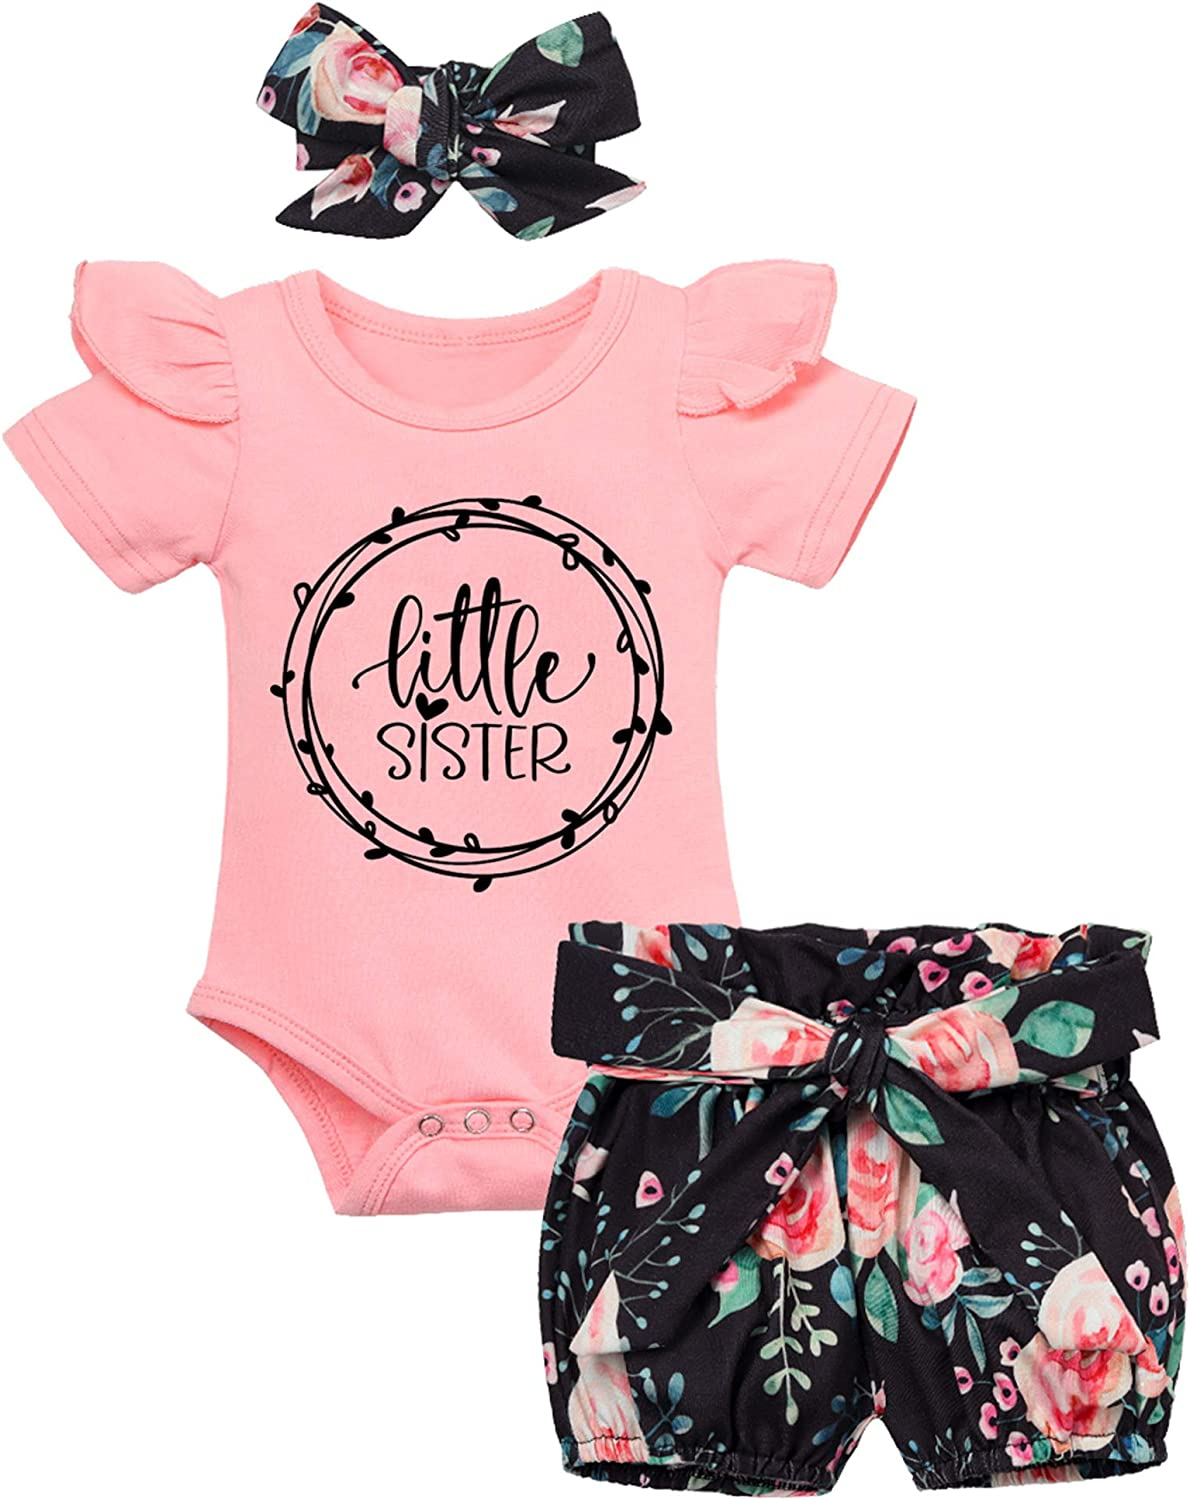 Baby Girls Clothes Floral Sleeve Romper+ Floral Short Pant 3pcs Summer Outfit Apricot